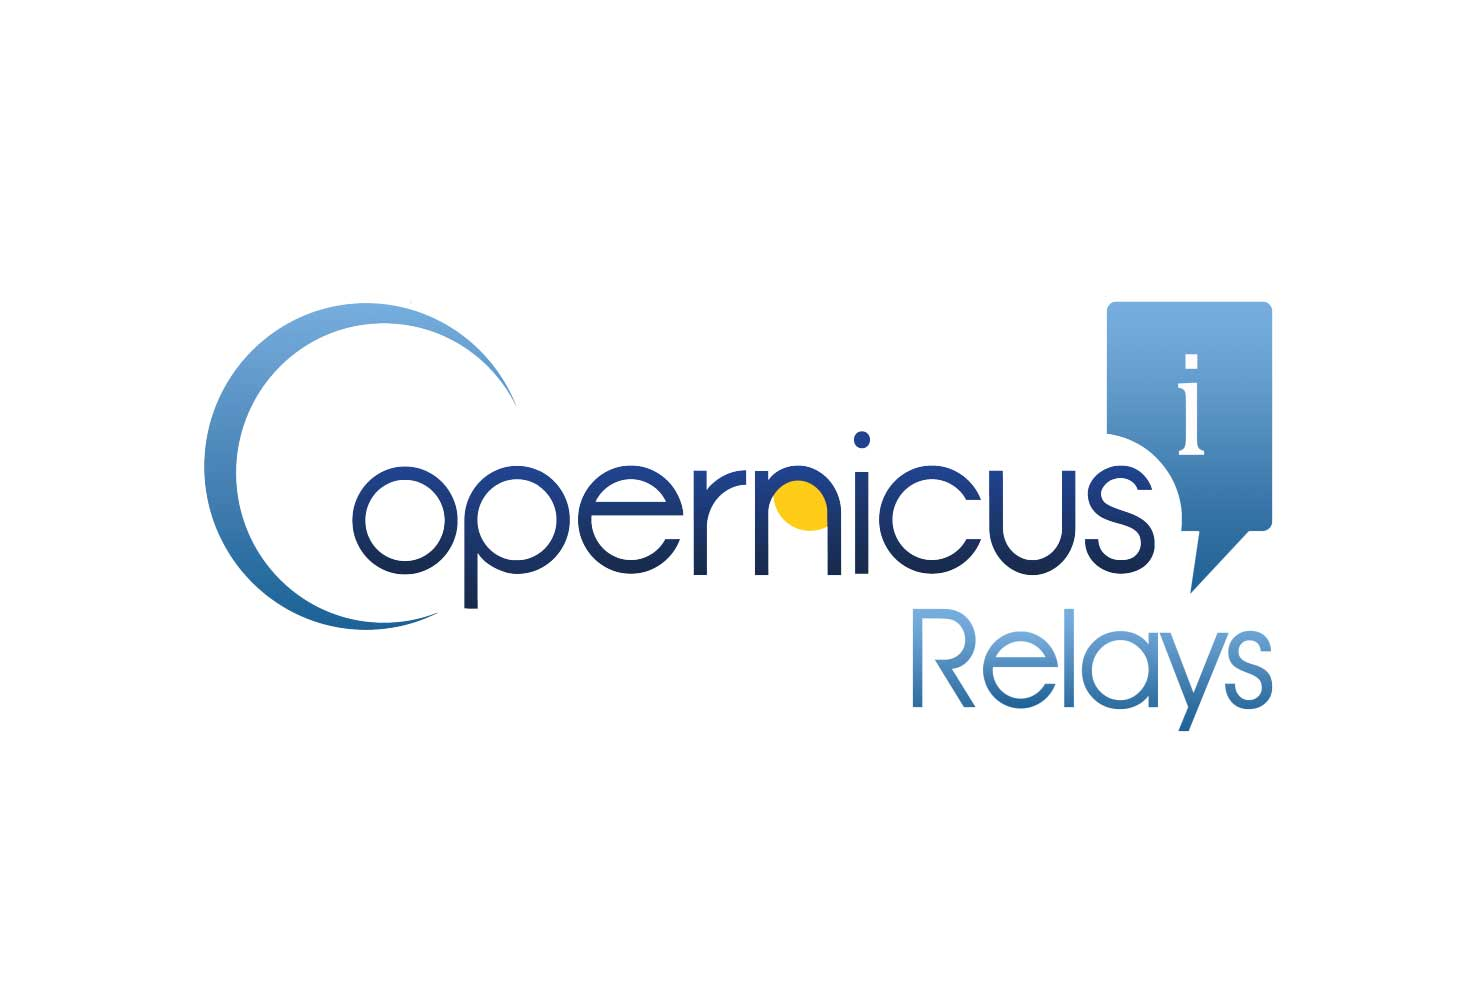 Copernicus Relay Network